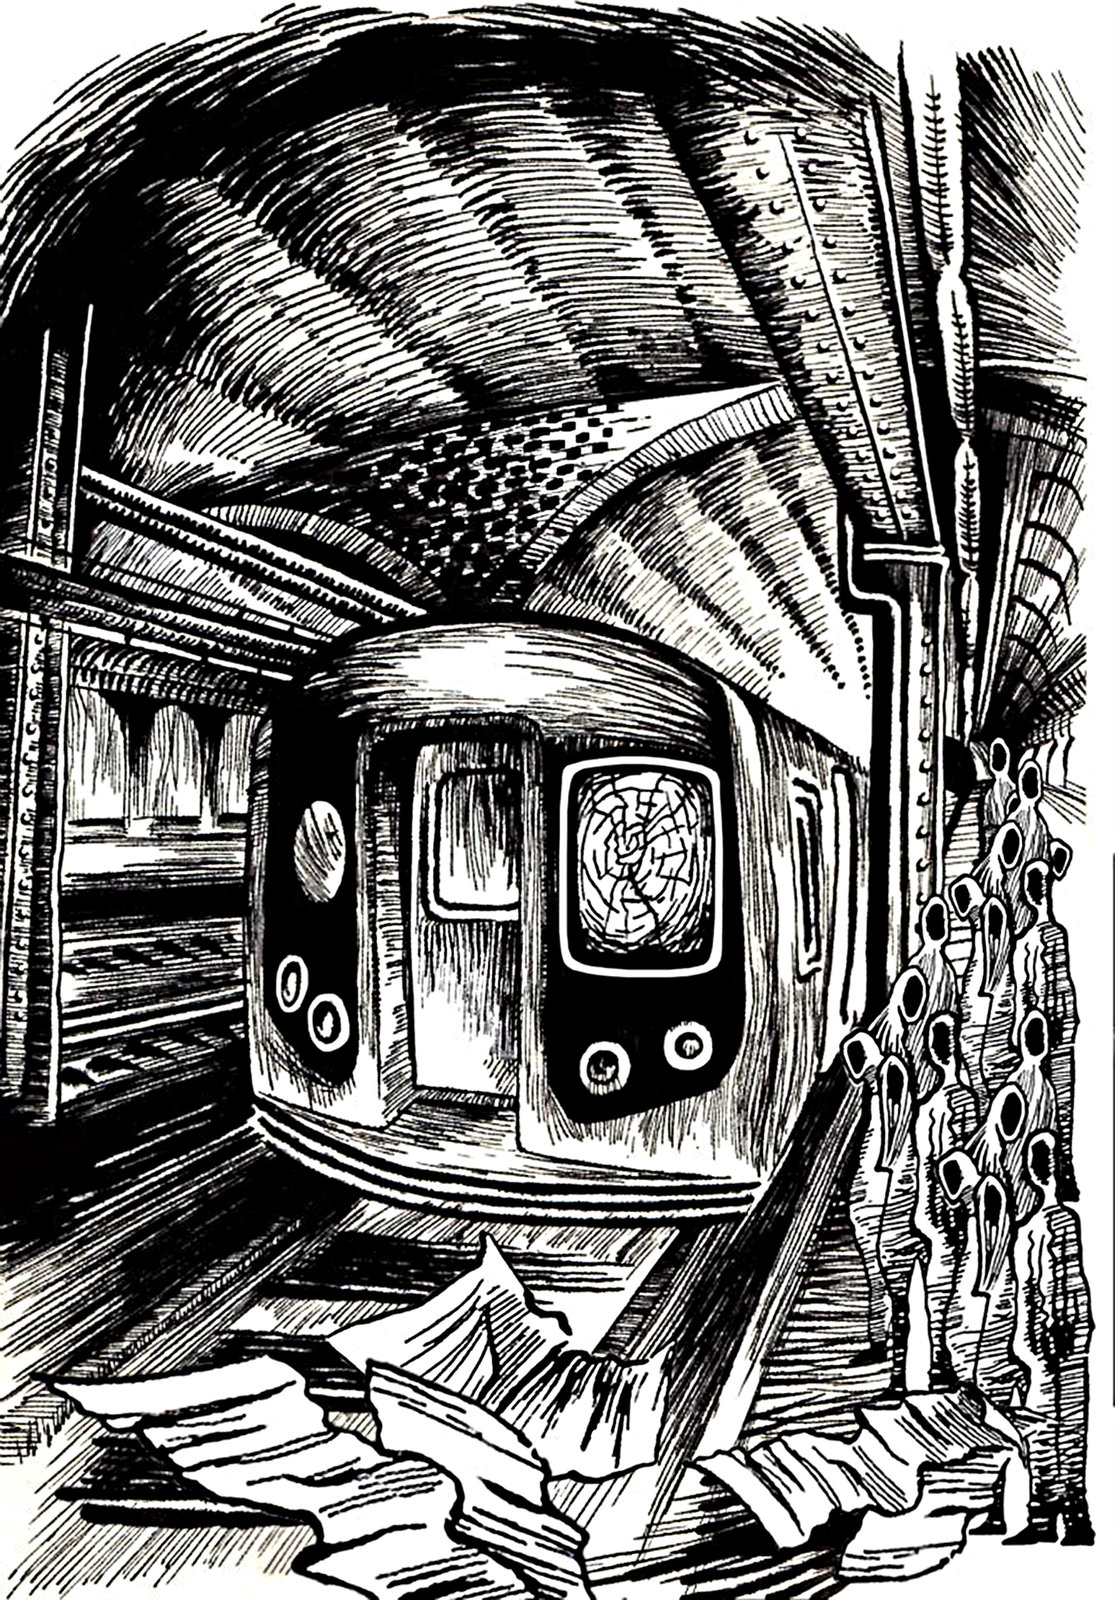 Pen and ink illustration